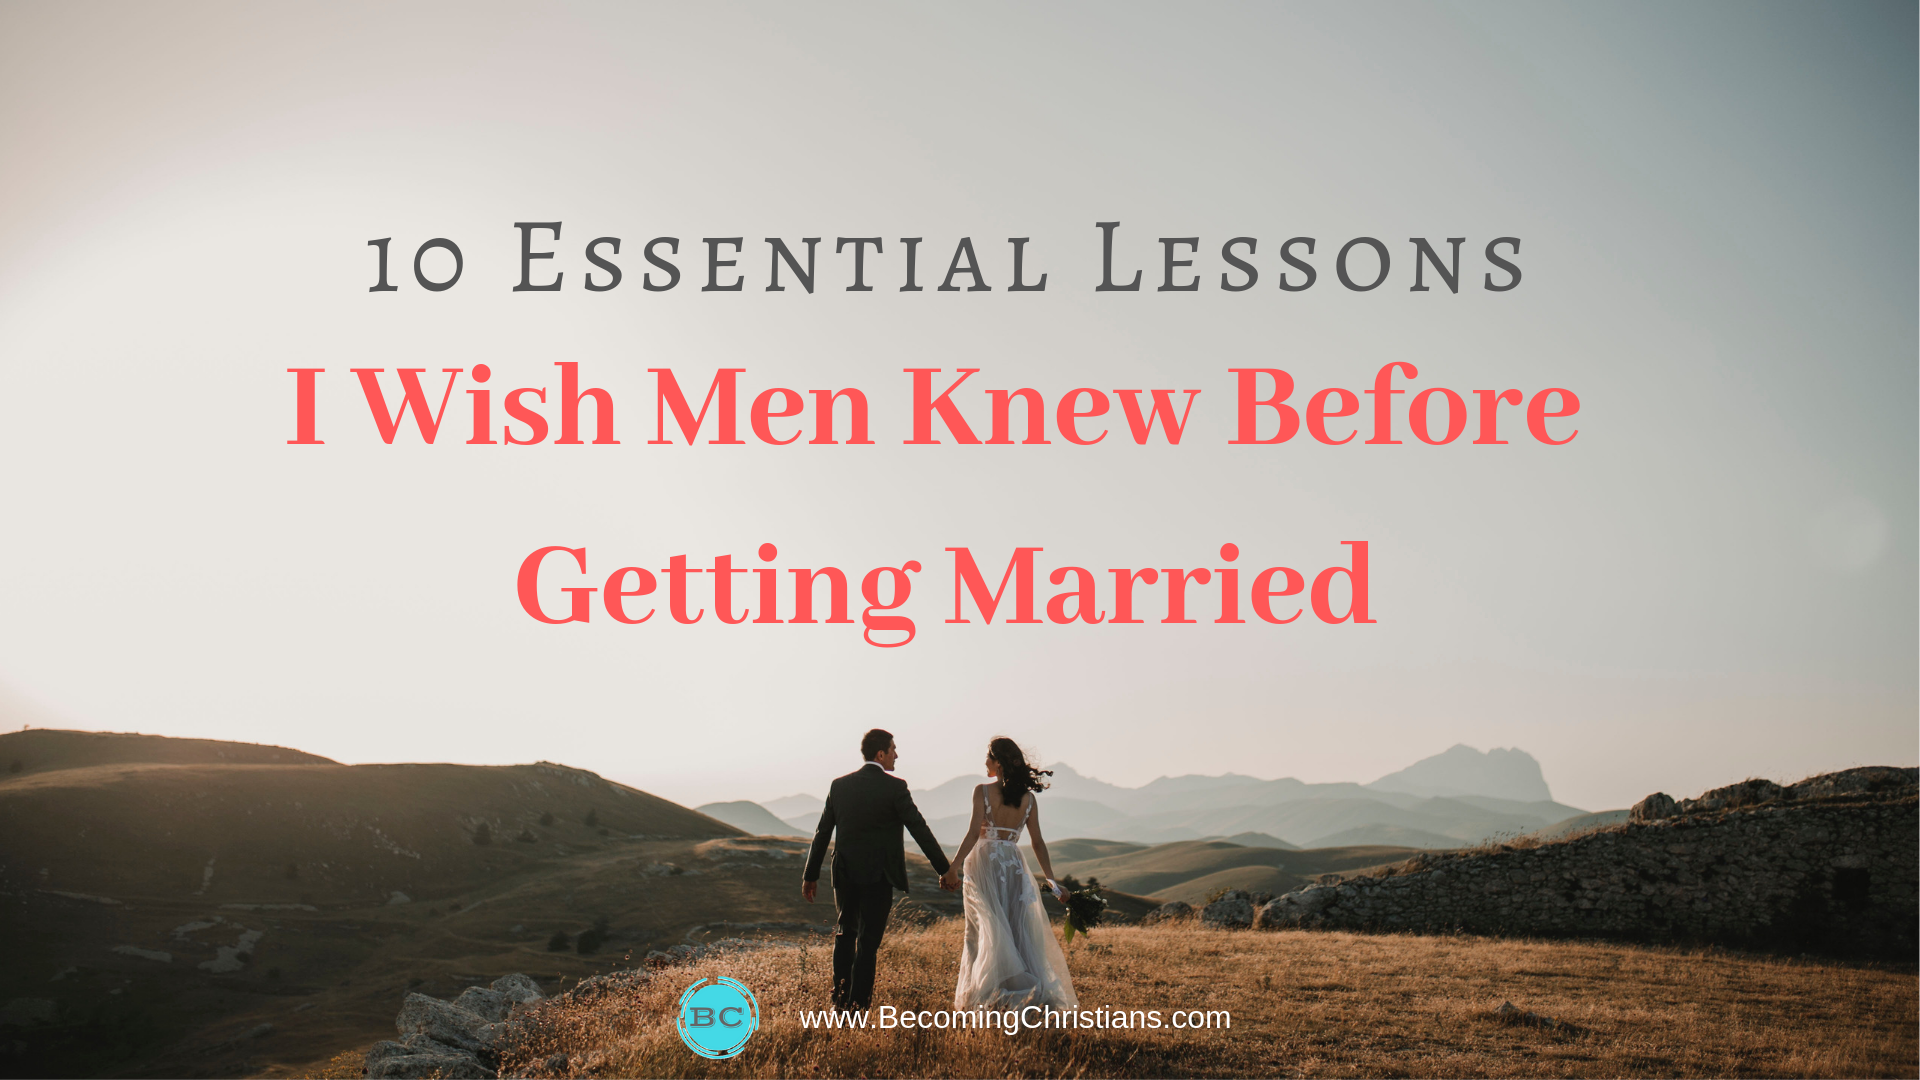 10 Essential Lessons I Wish Men Knew Before Getting Married